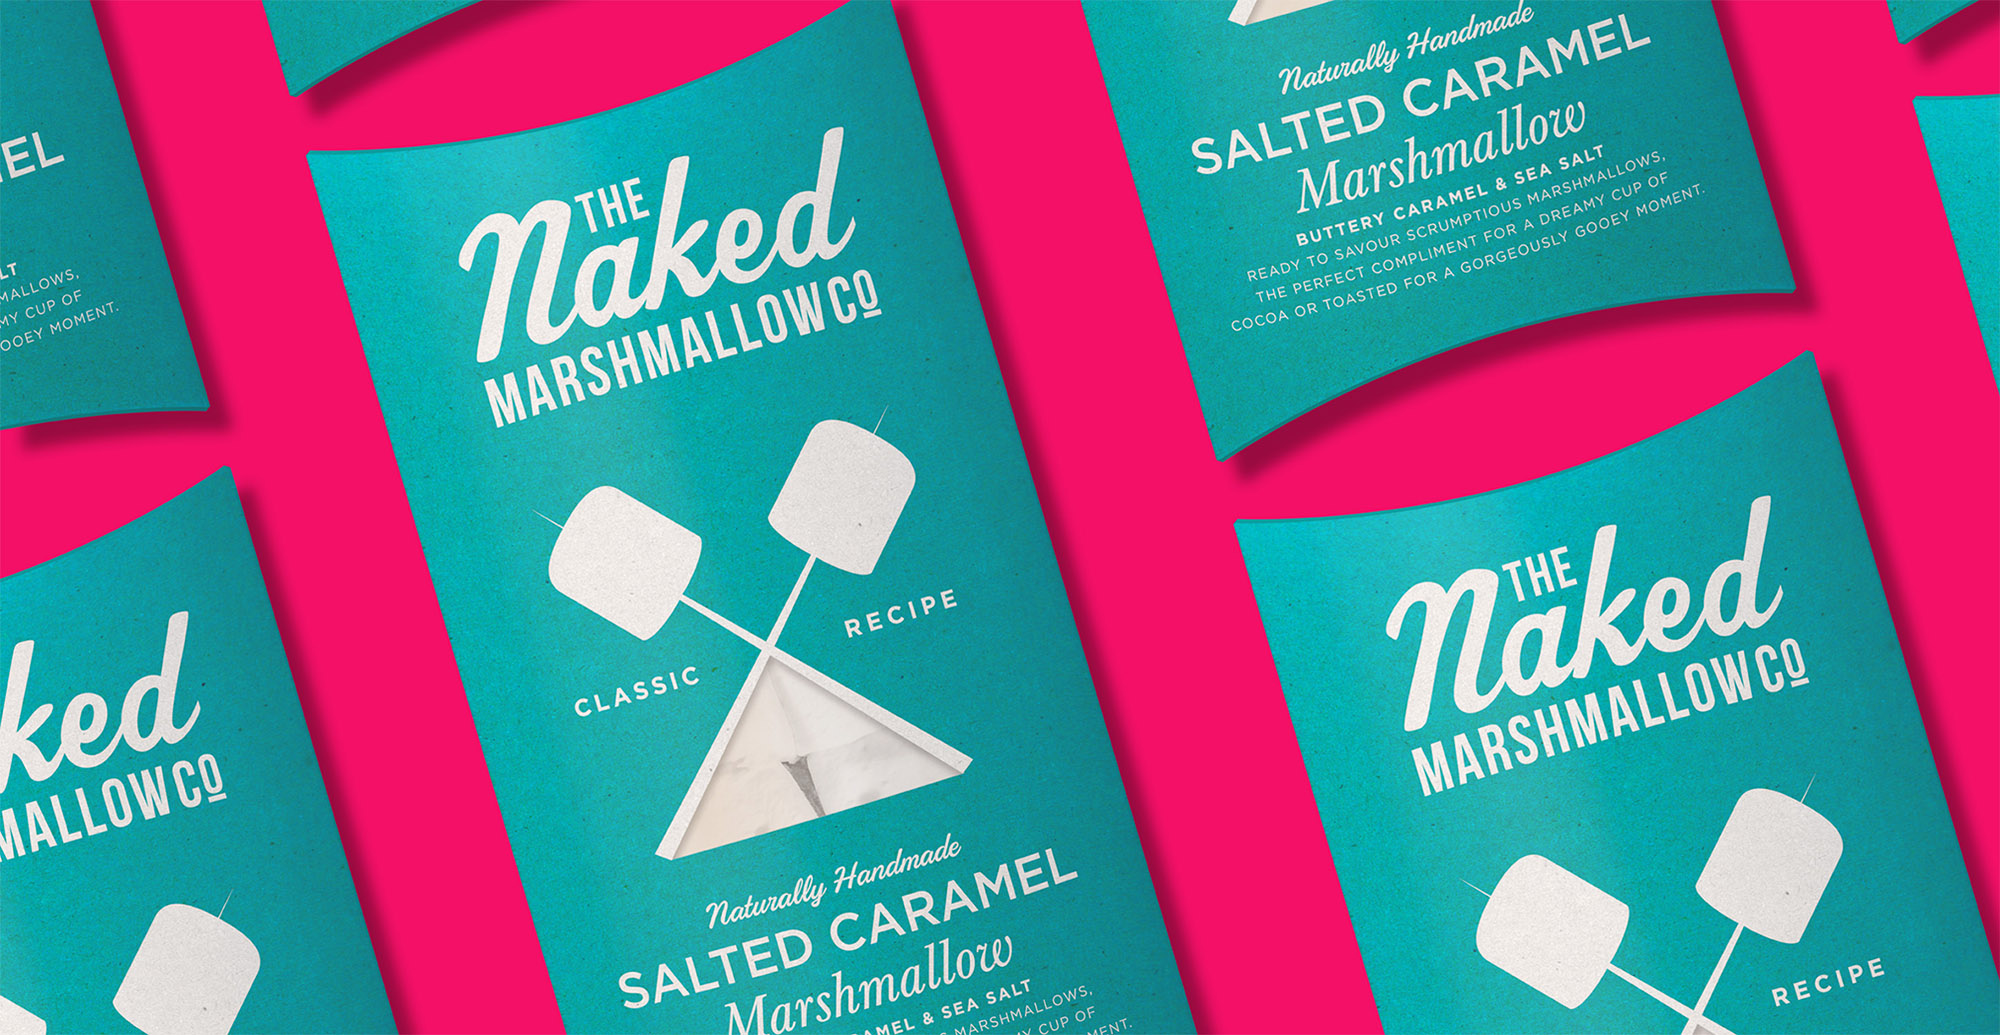 Branding and packaging design for confectionary brand The Naked Marshmallow Co by Design Happy London - Salted Caramel Vodka packaging design